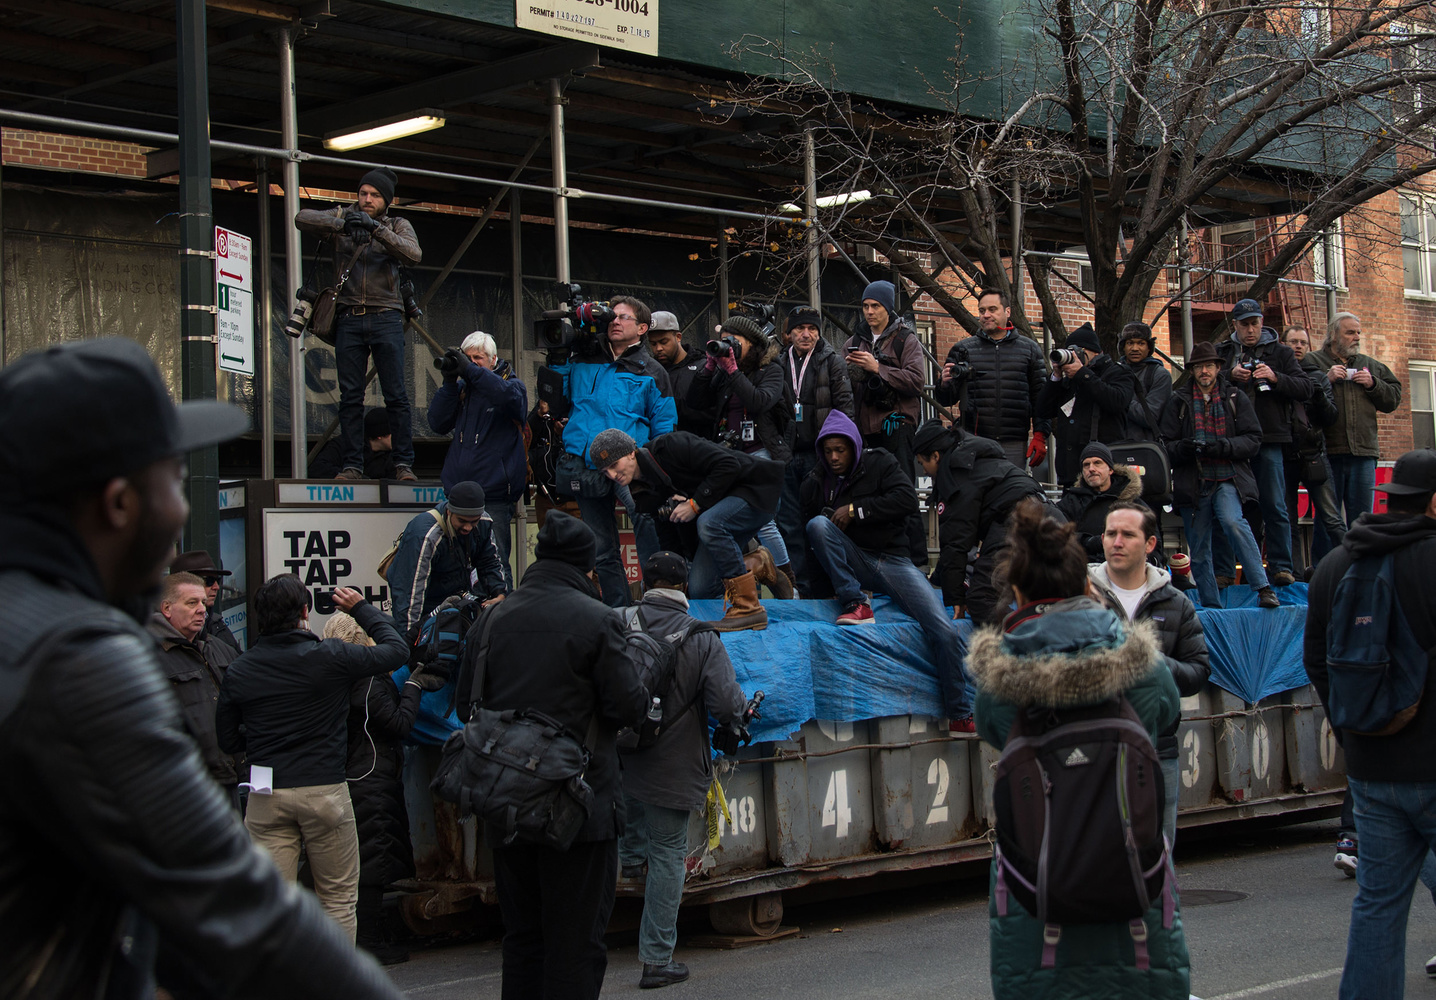 News photographers gain some height by standing on a dumpster on Saturday, Dec. 13, 2014 at the Millions March NYC. With the layoffs of so many photojournalists, there will be less eyes on key moments in New York City. Photo by Chelsea Katz.